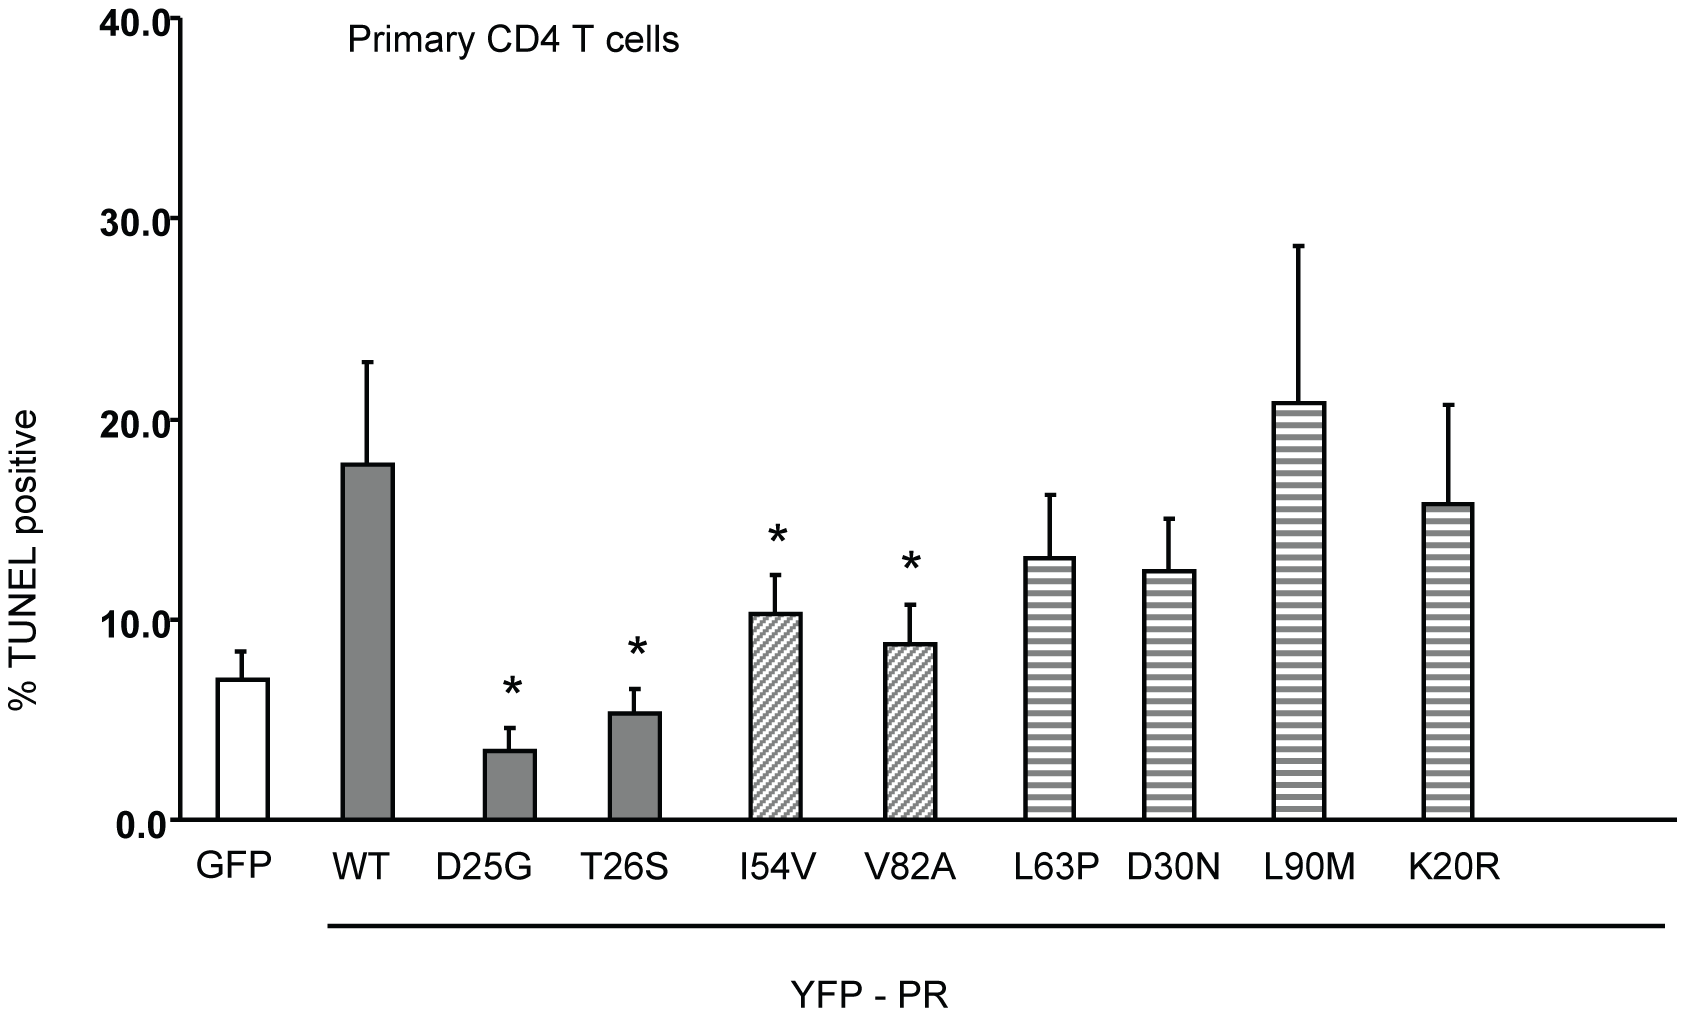 Expression of Discordance Associated Mutations (DAMs) in primary CD4 T cells alters generation of TUNEL positivity.